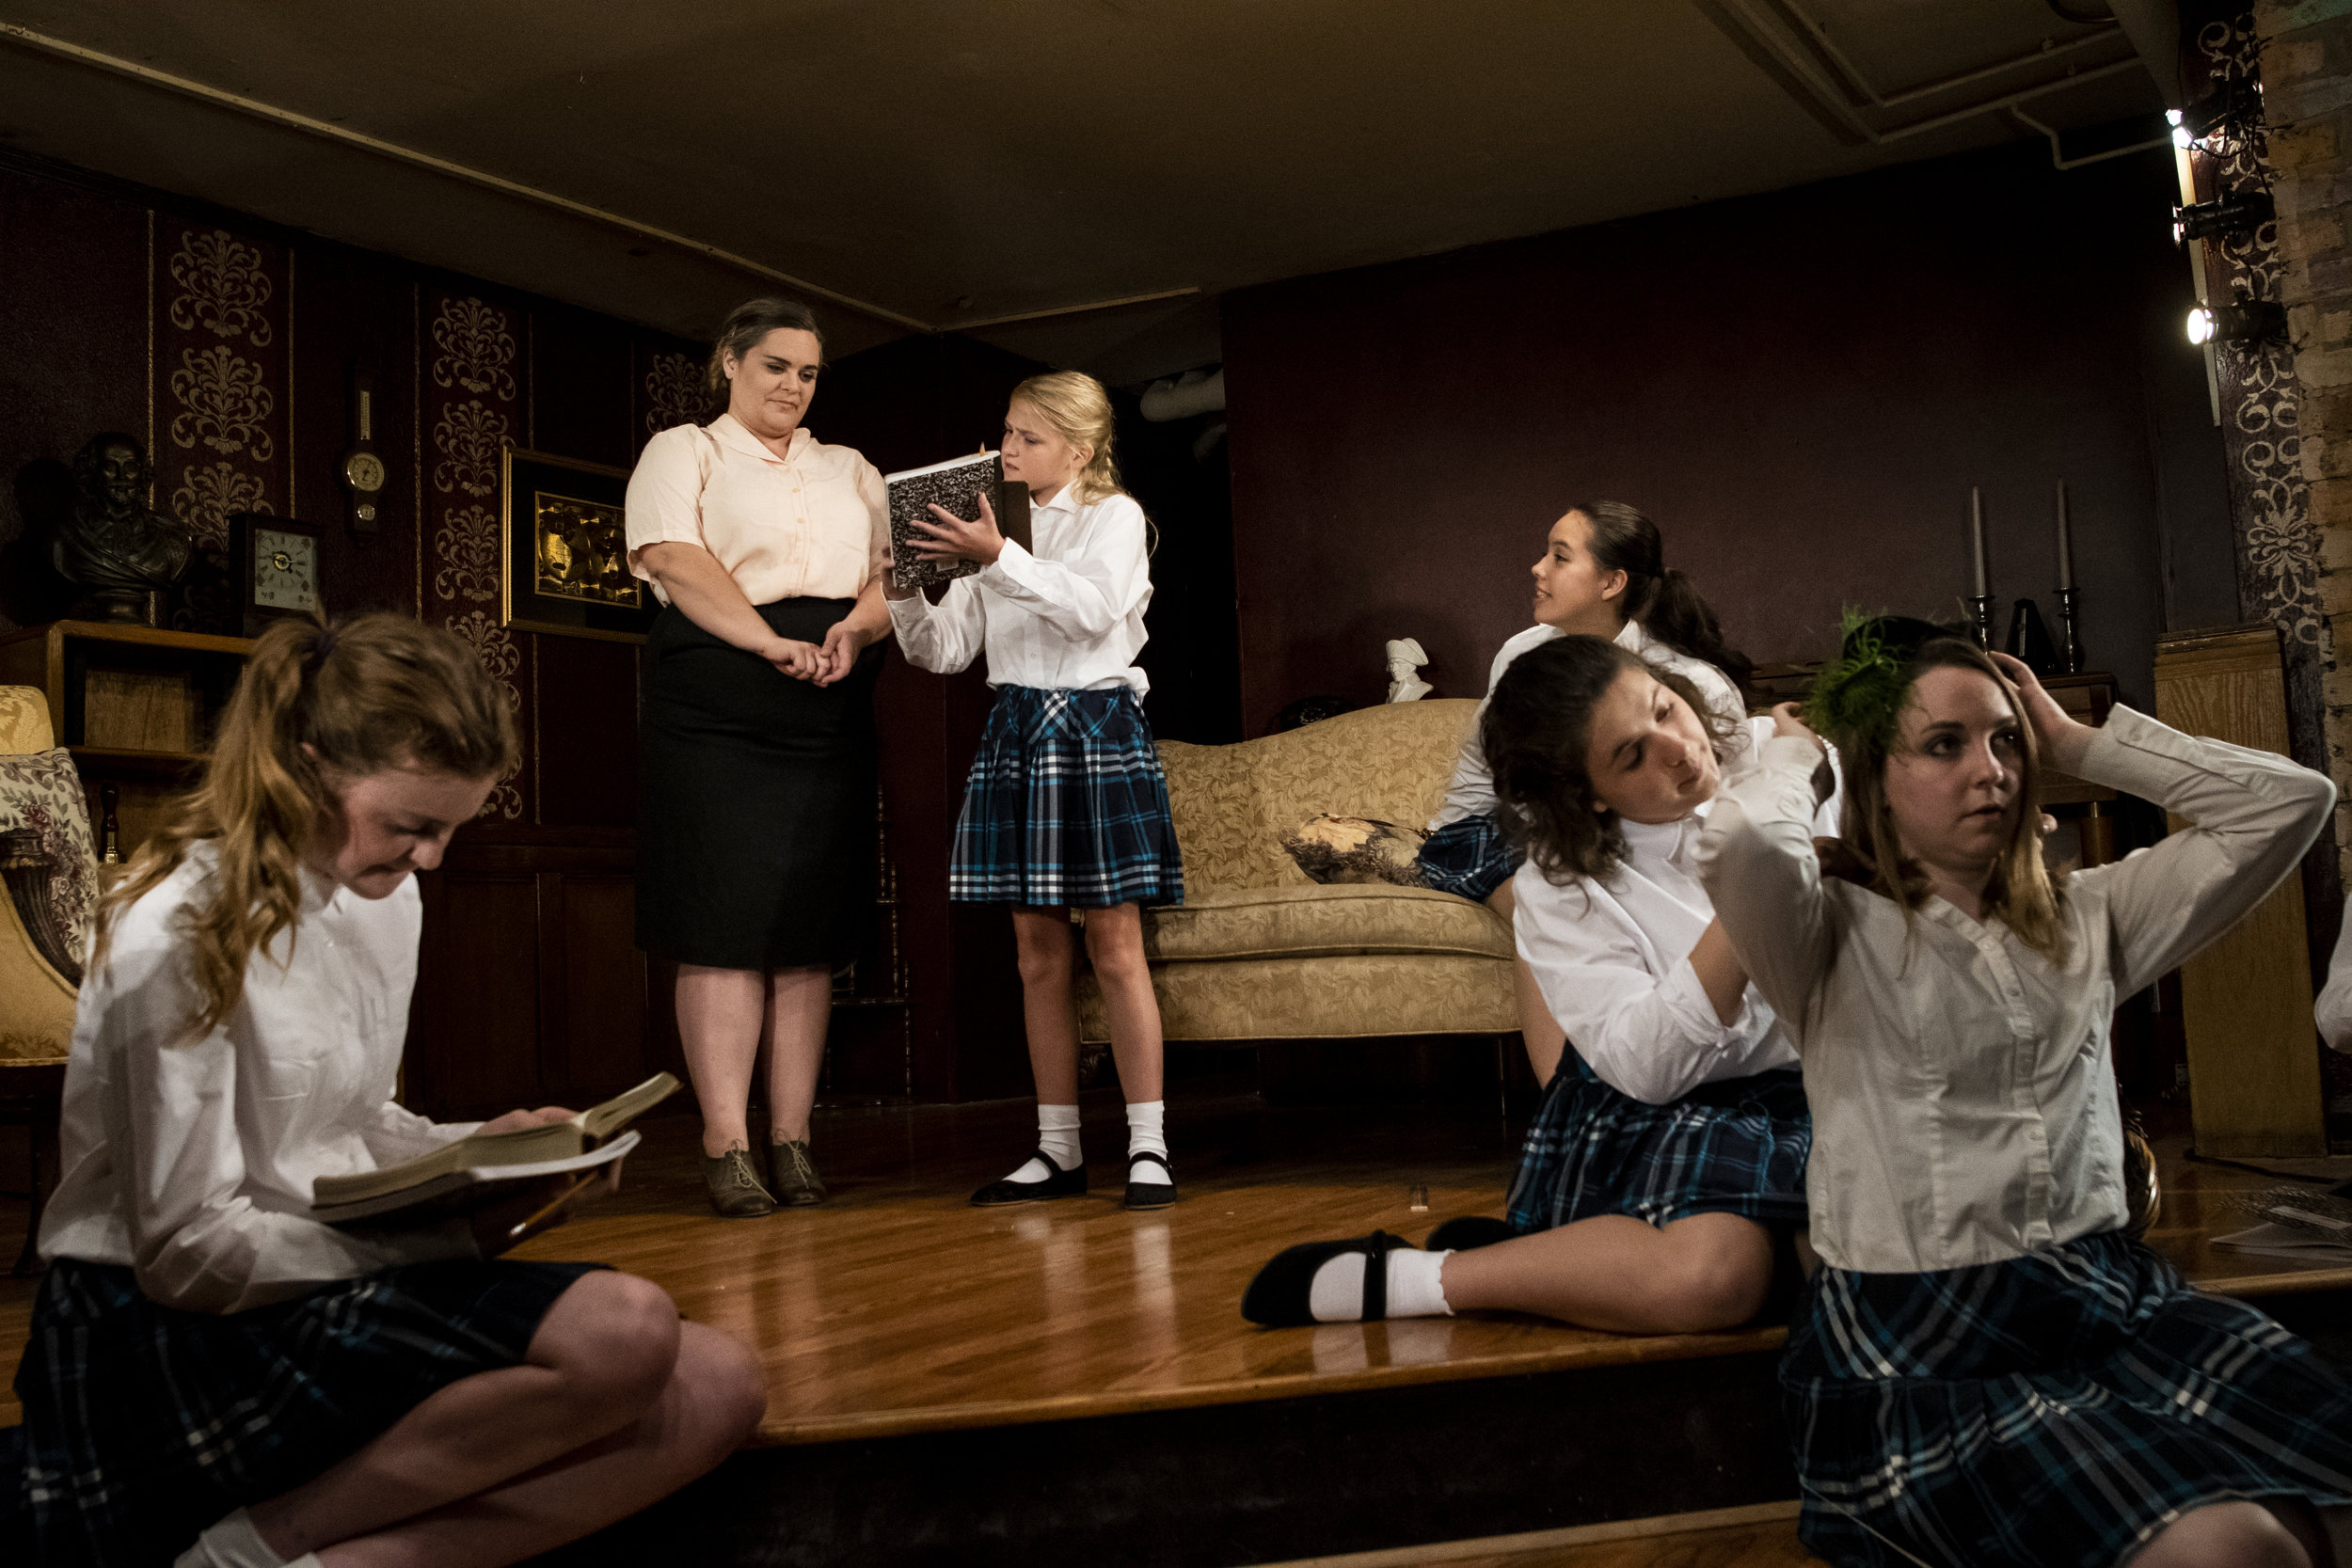 "Mrs. Lily Mortar (Brittany Boeche) discusses literature with student Catherine (Ellie Boyce) while her classmate Helen (Madie Gellings) listens on the couch in a scene from Outskirts Theatre Company's ""The Children's Hour."". In front, from left, are students Peggy (Greta Dane), Evelyn (Katrina Liberman) and Rosalie (Anna Lee Murray)."